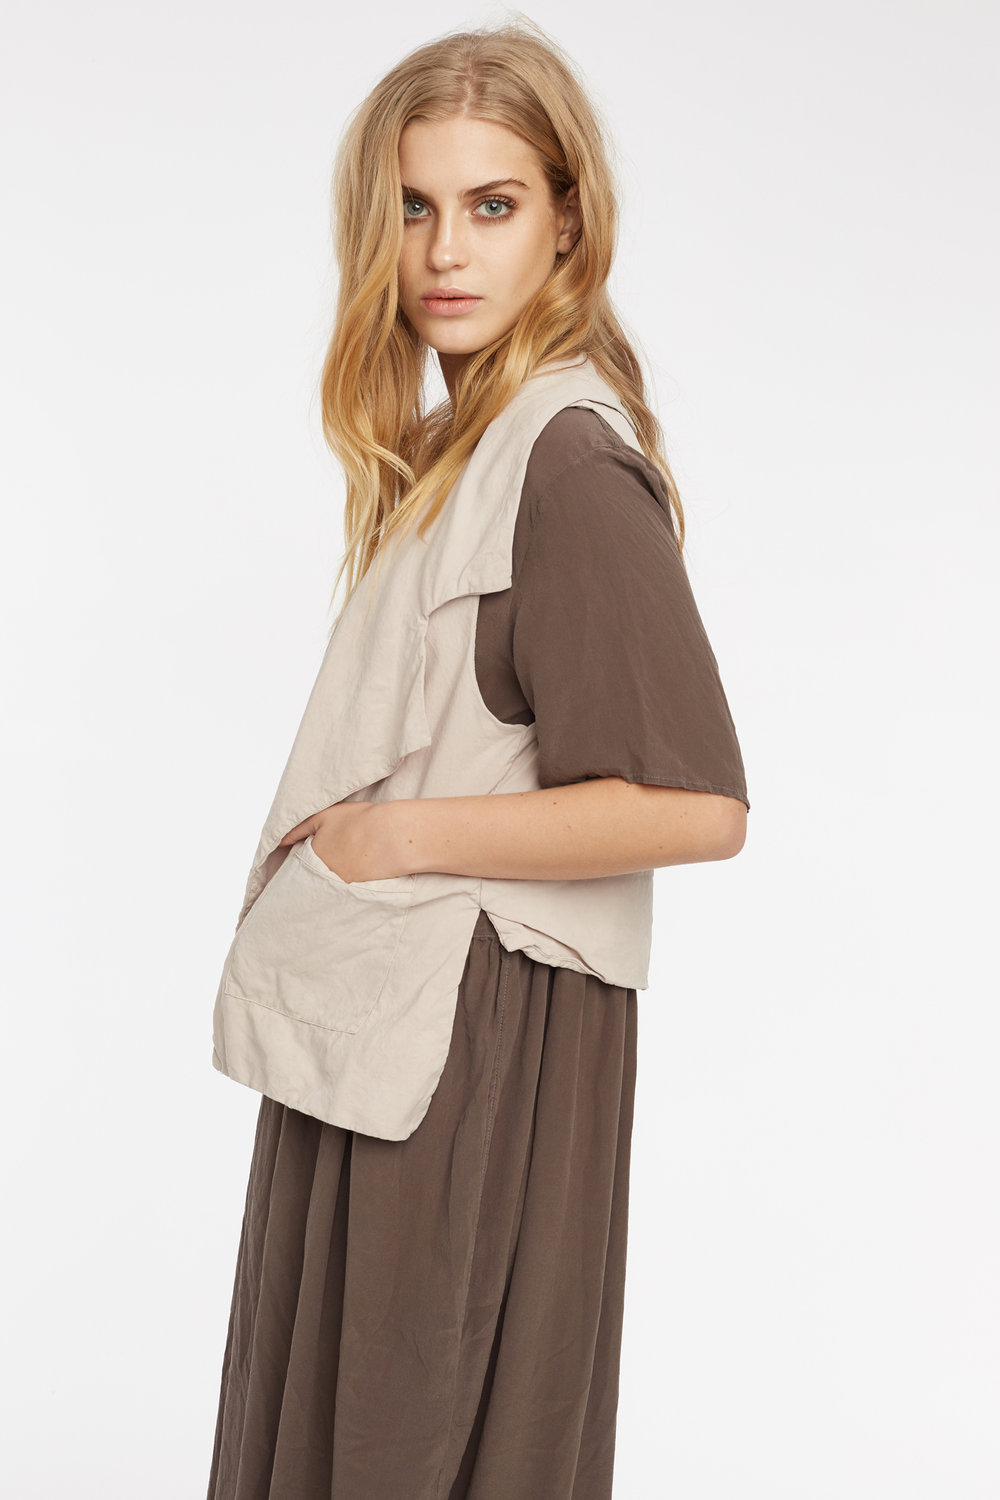 GRUNDY DRESS WOODEN. ARTE VEST TAUPE